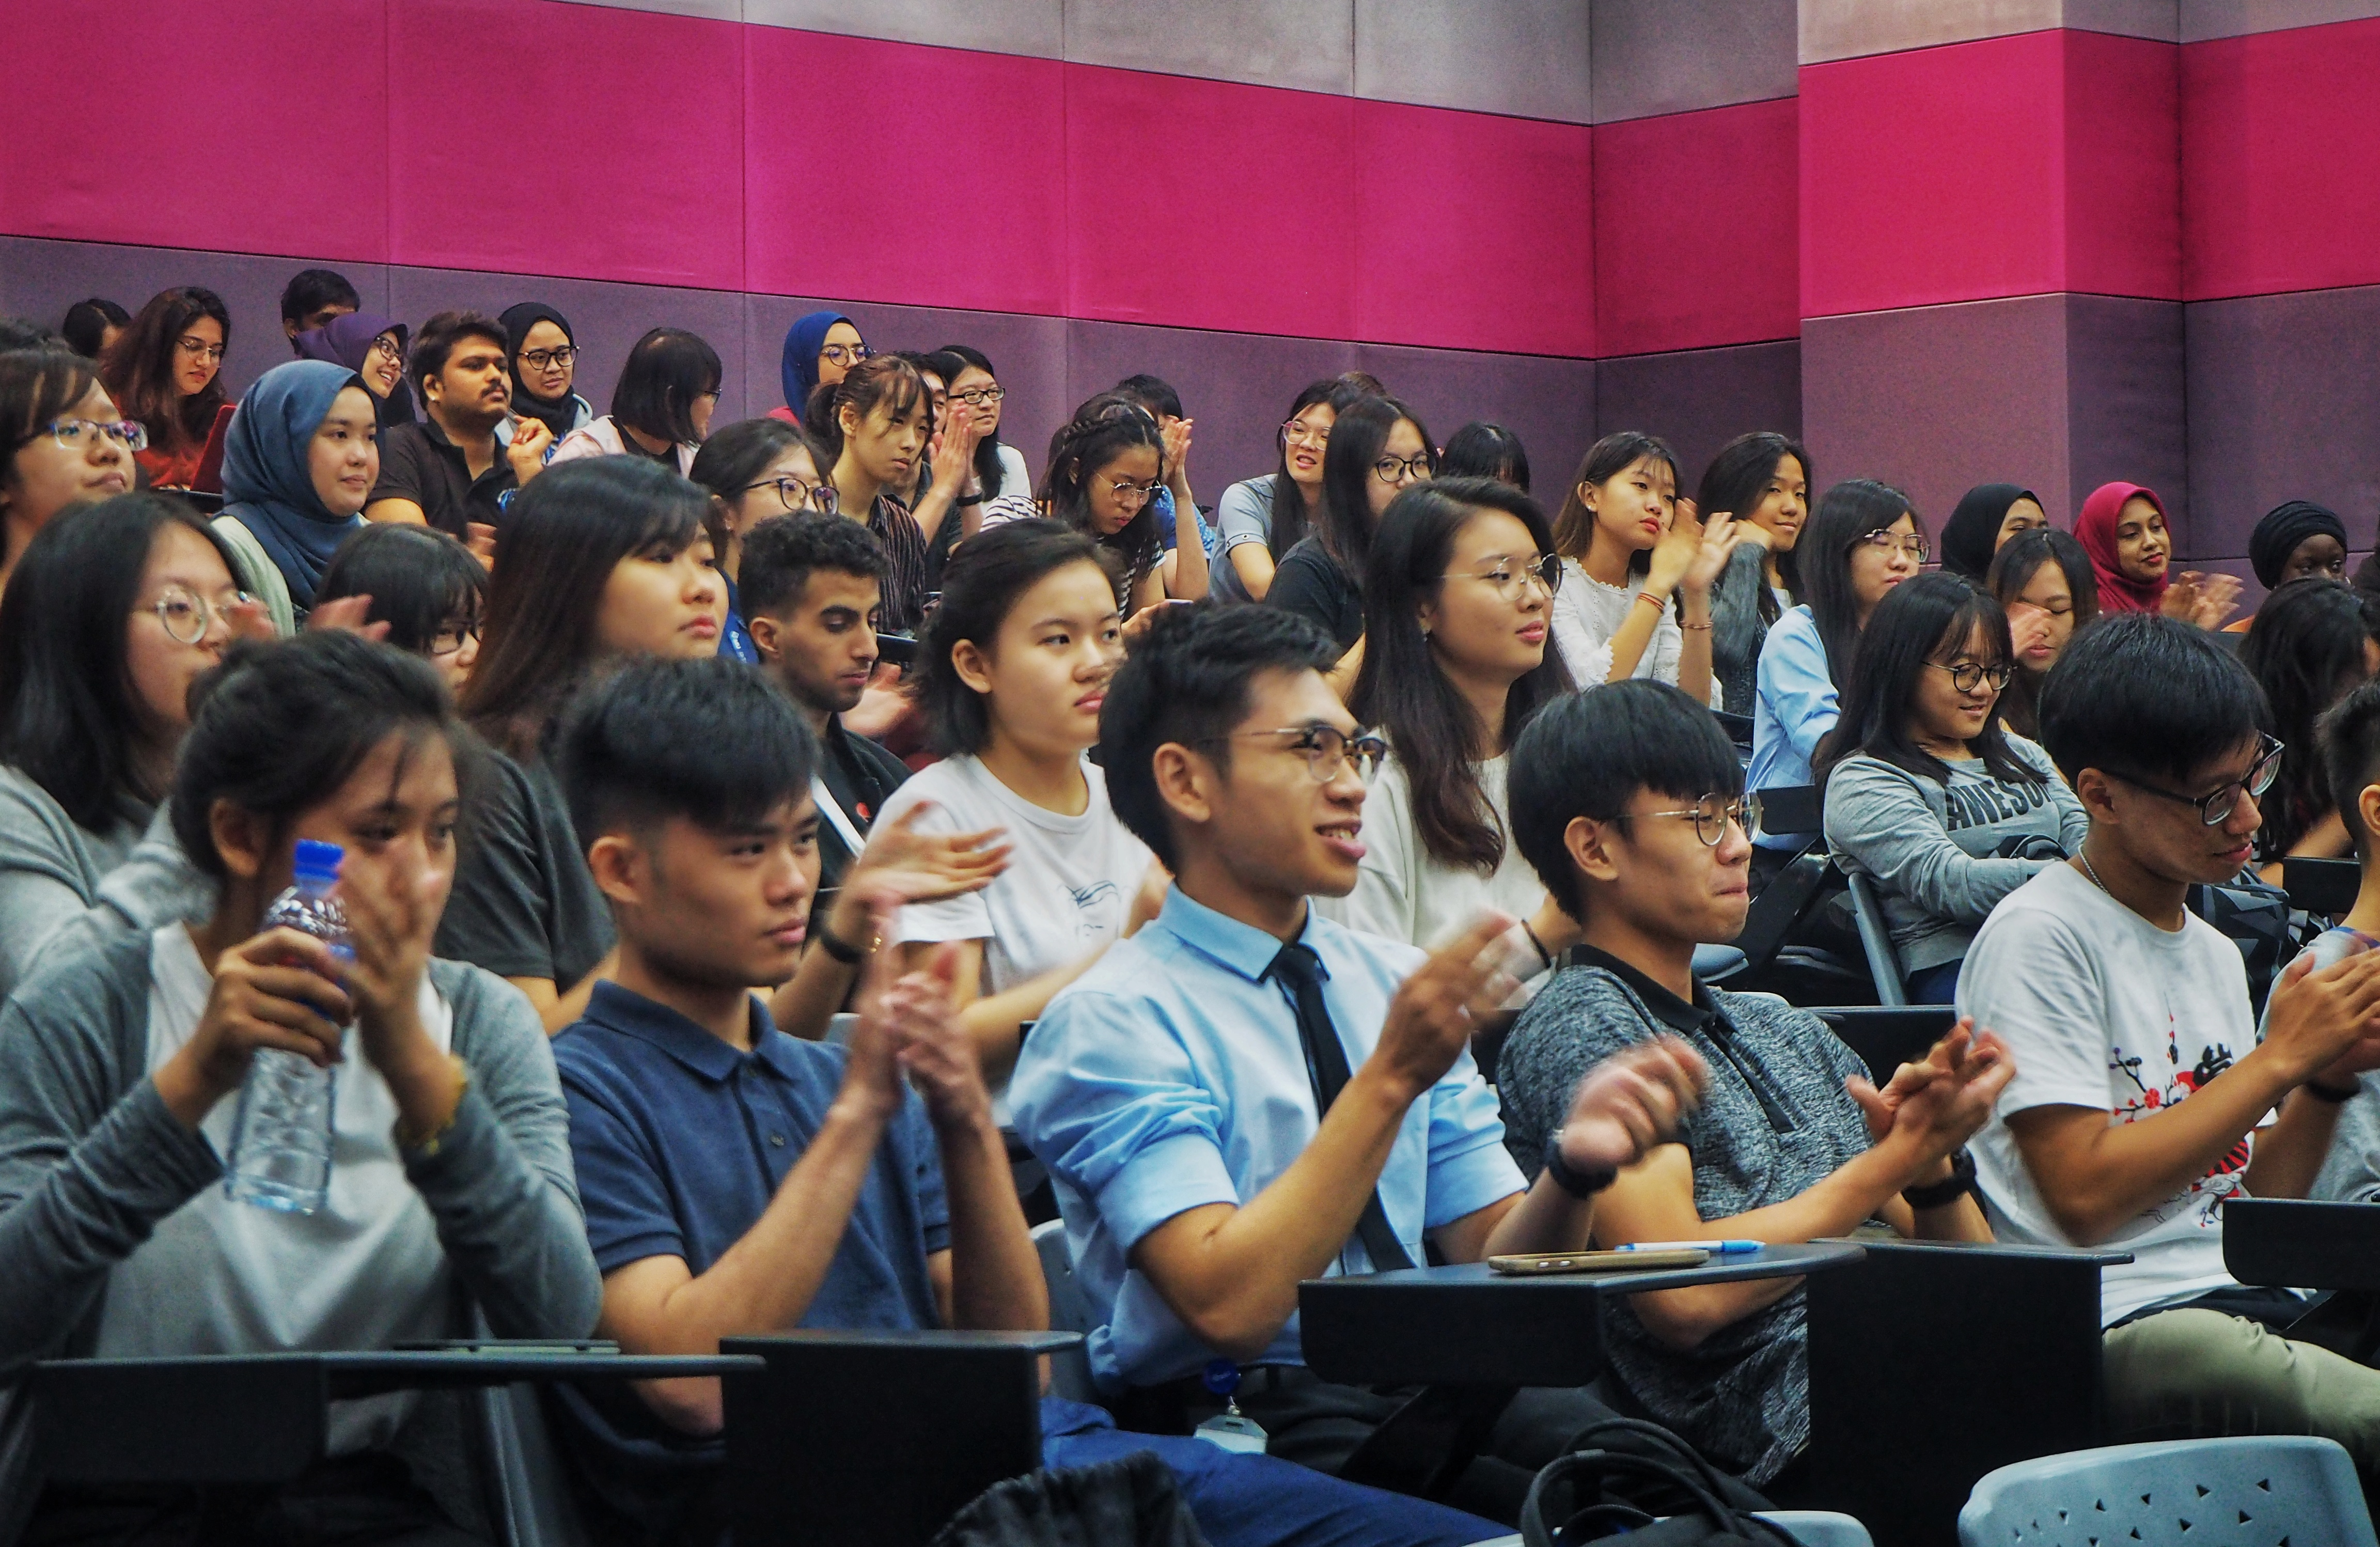 A sharing session and forum for IMU Biomedical Science students.